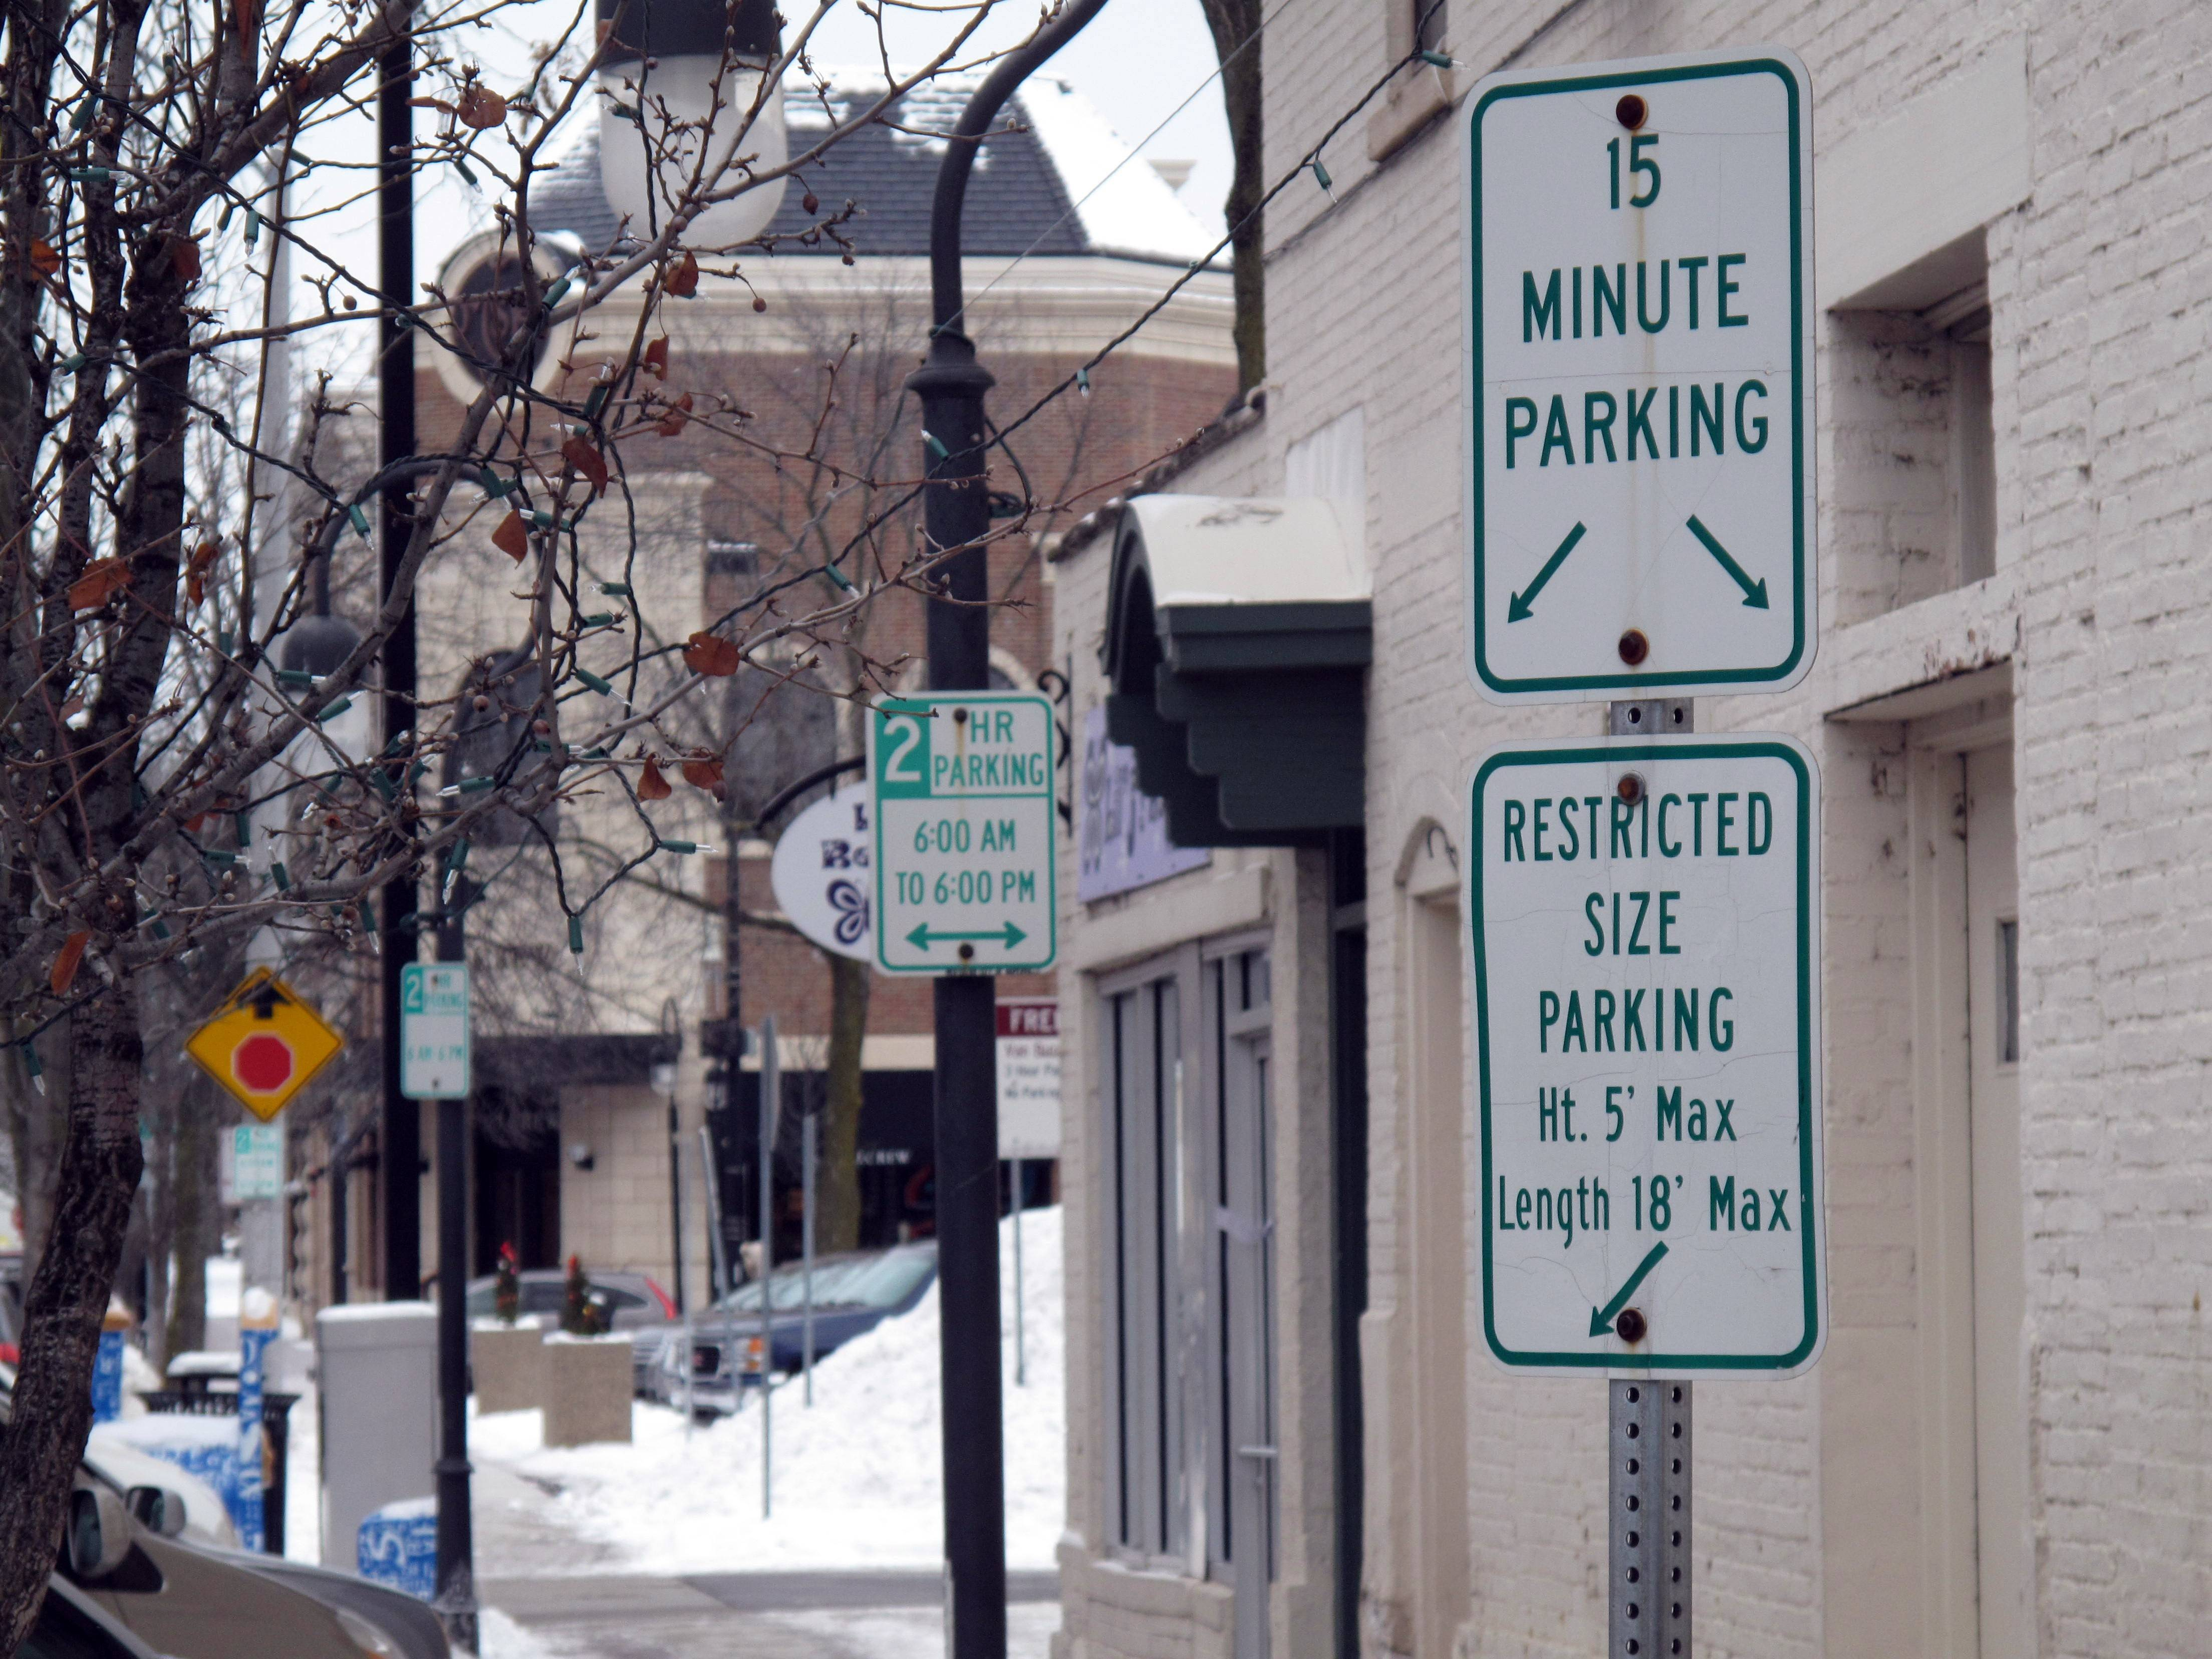 Downtown Naperville parking satisfaction drops as shoppers perceive 'hassle'